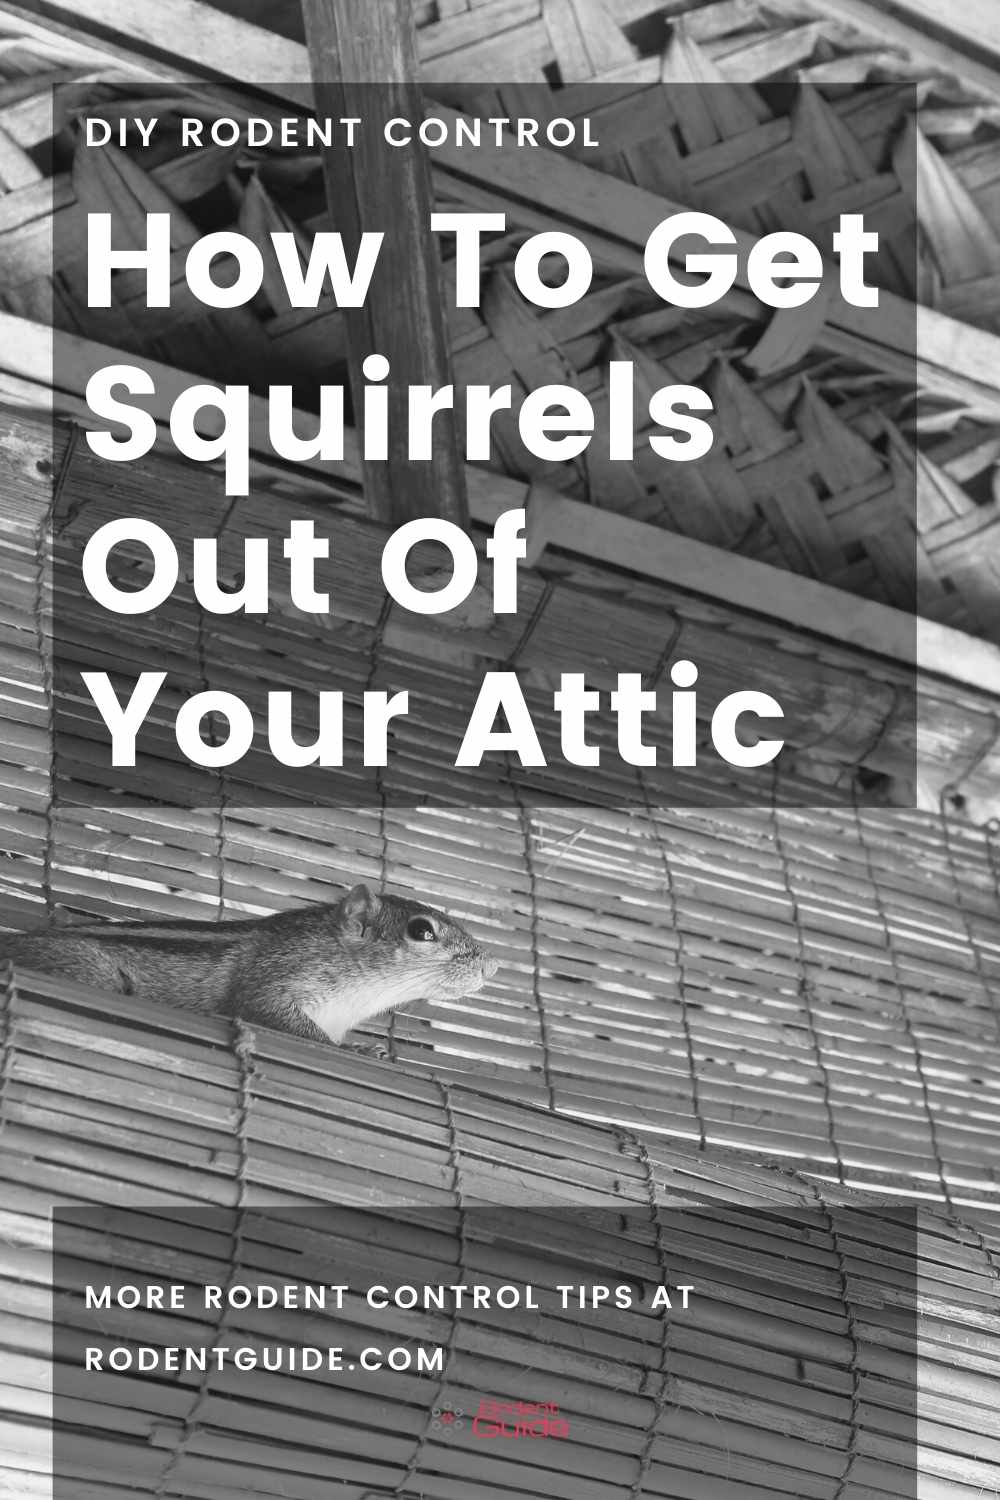 How To Get Squirrels Out Of Your Attic